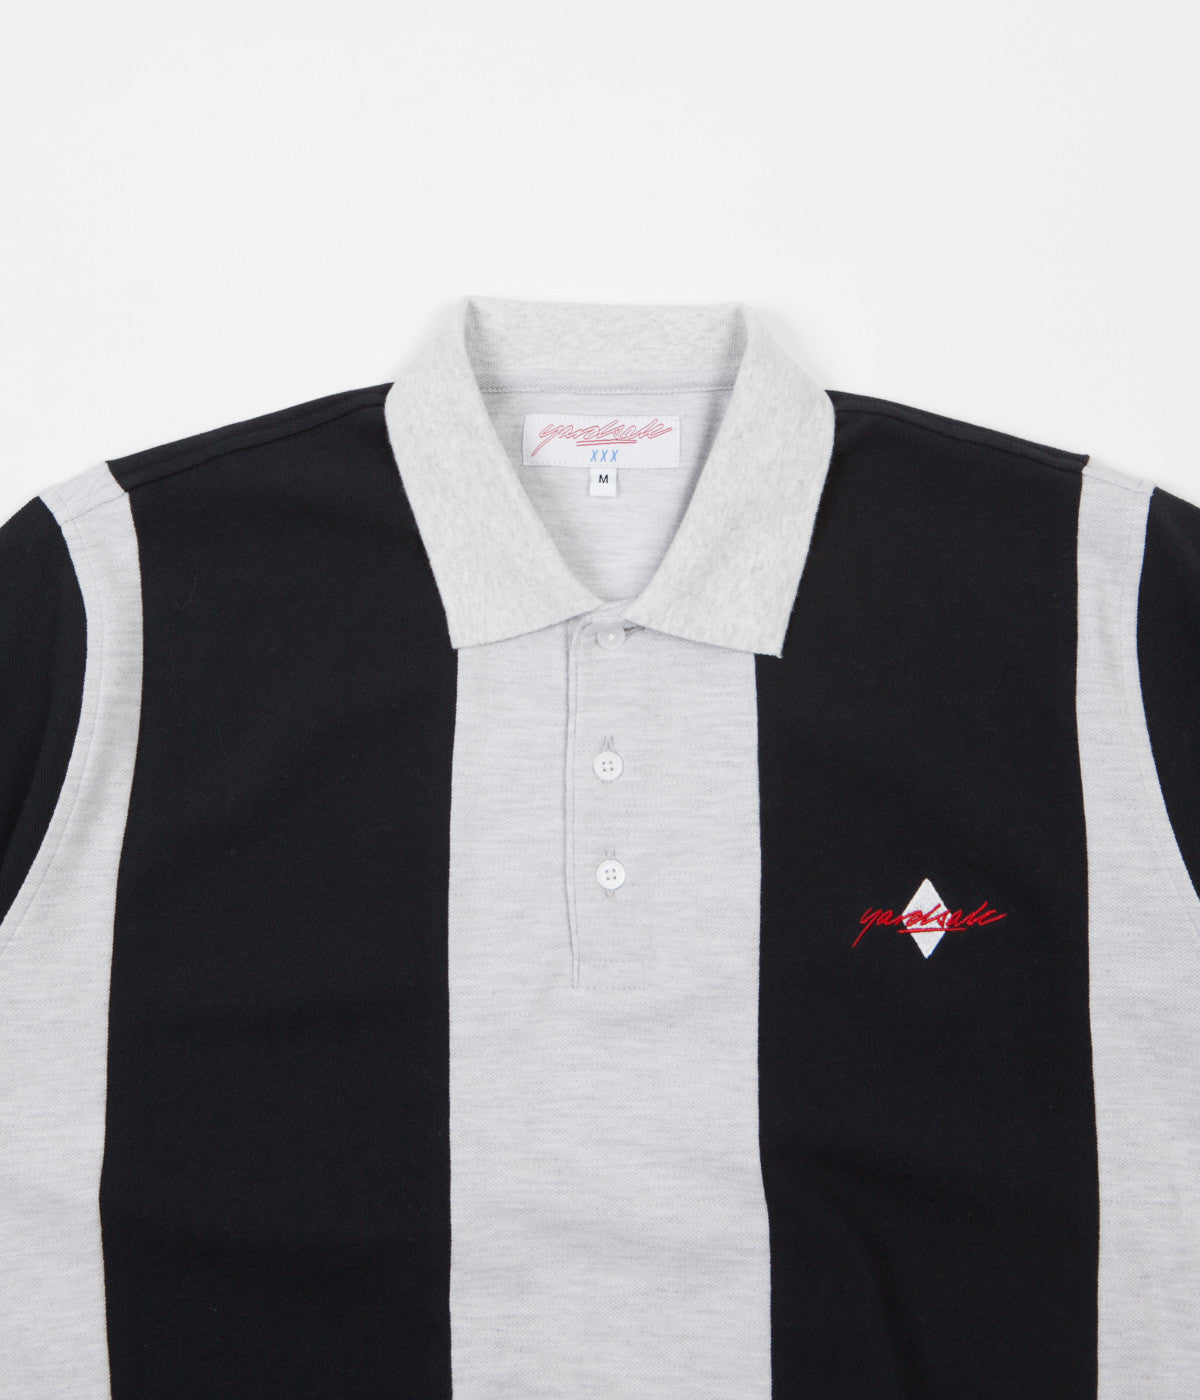 Yardsale Quartz Polo Shirt - Black / Ash